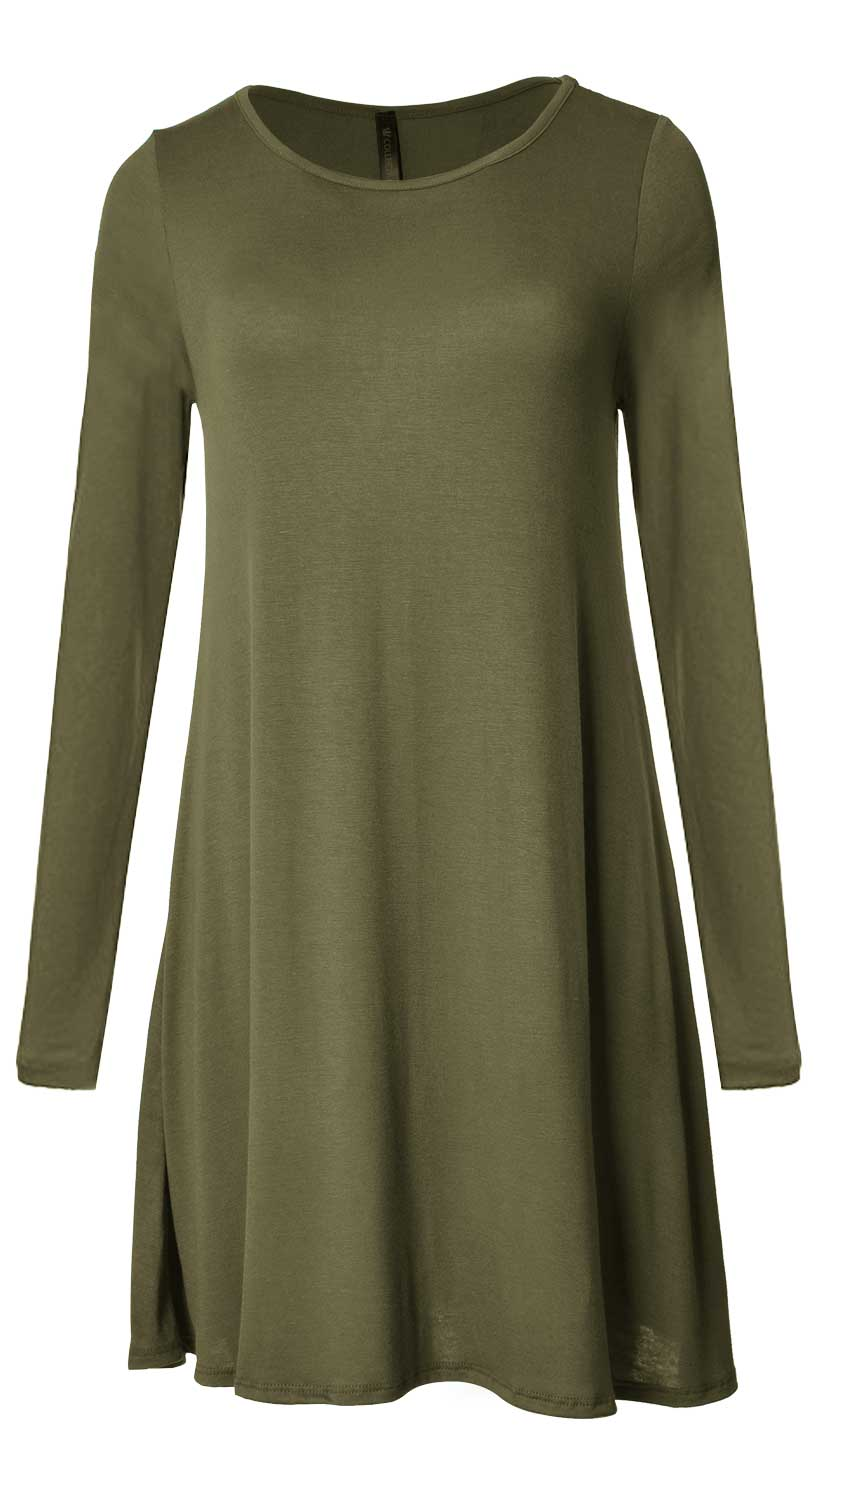 Long Sleeve Flare Hem Tunic Top